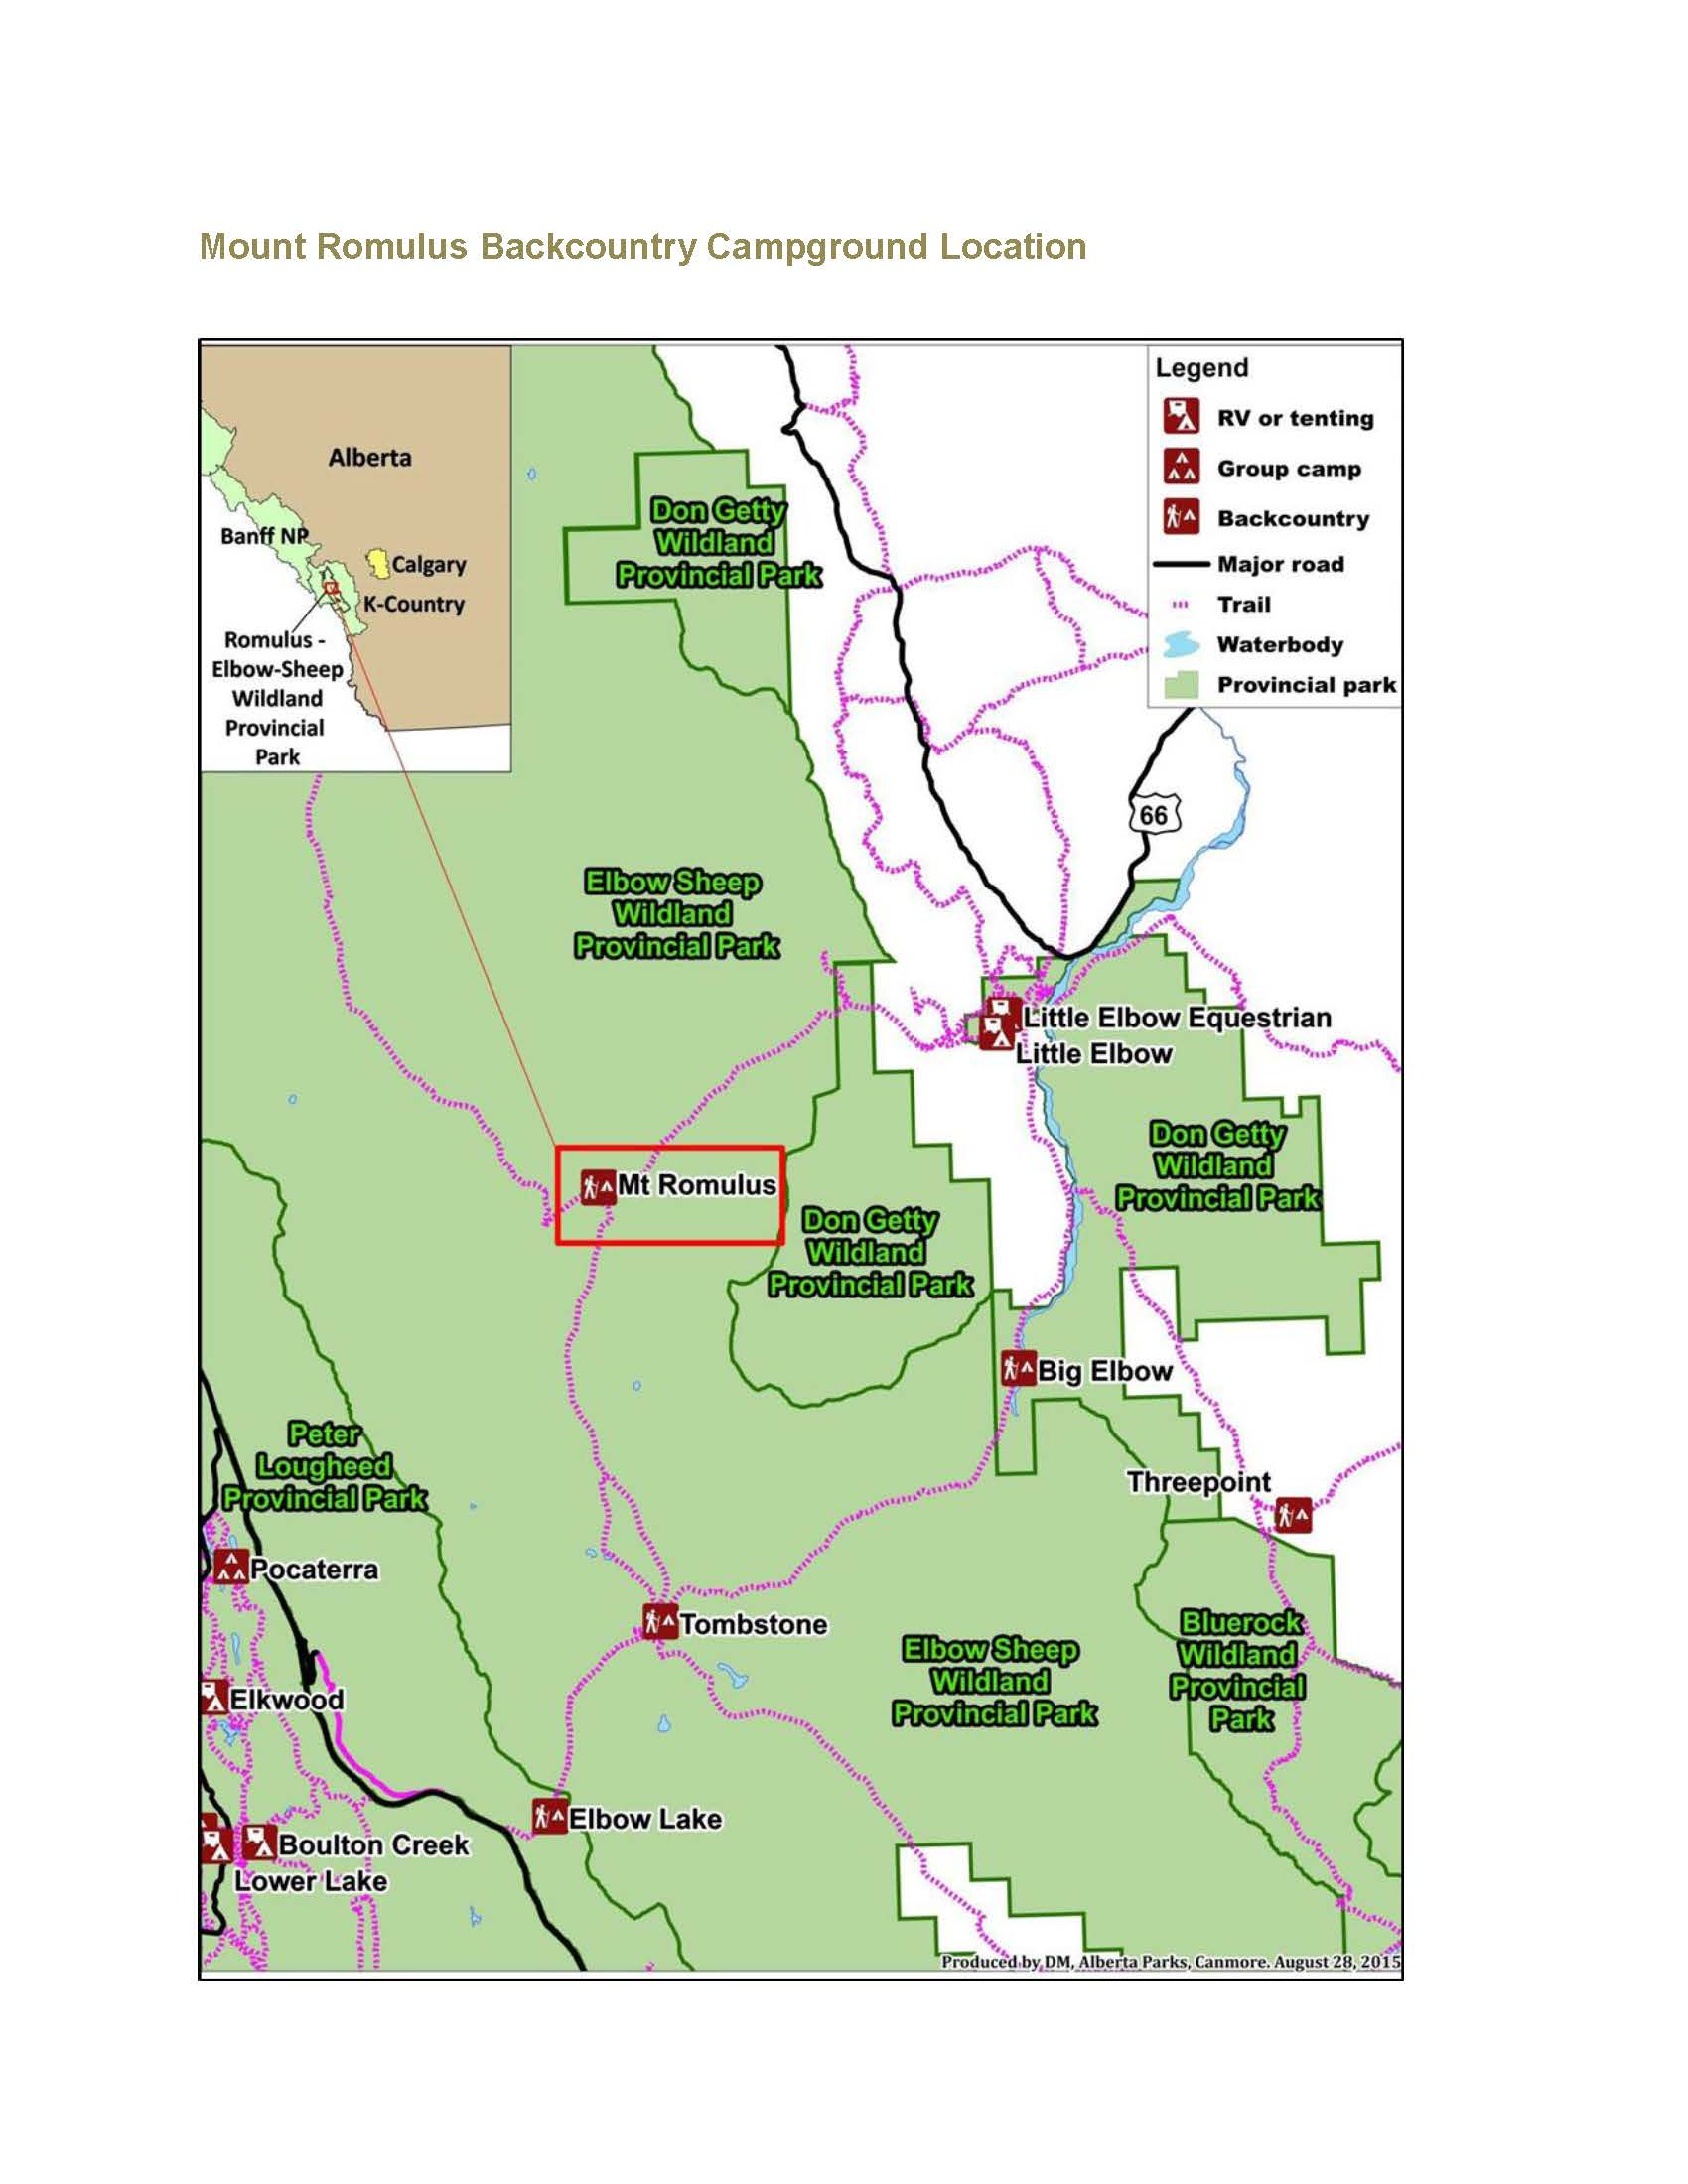 Elbow-Sheep WPP - Mount Romulus Backcountry Campground Map